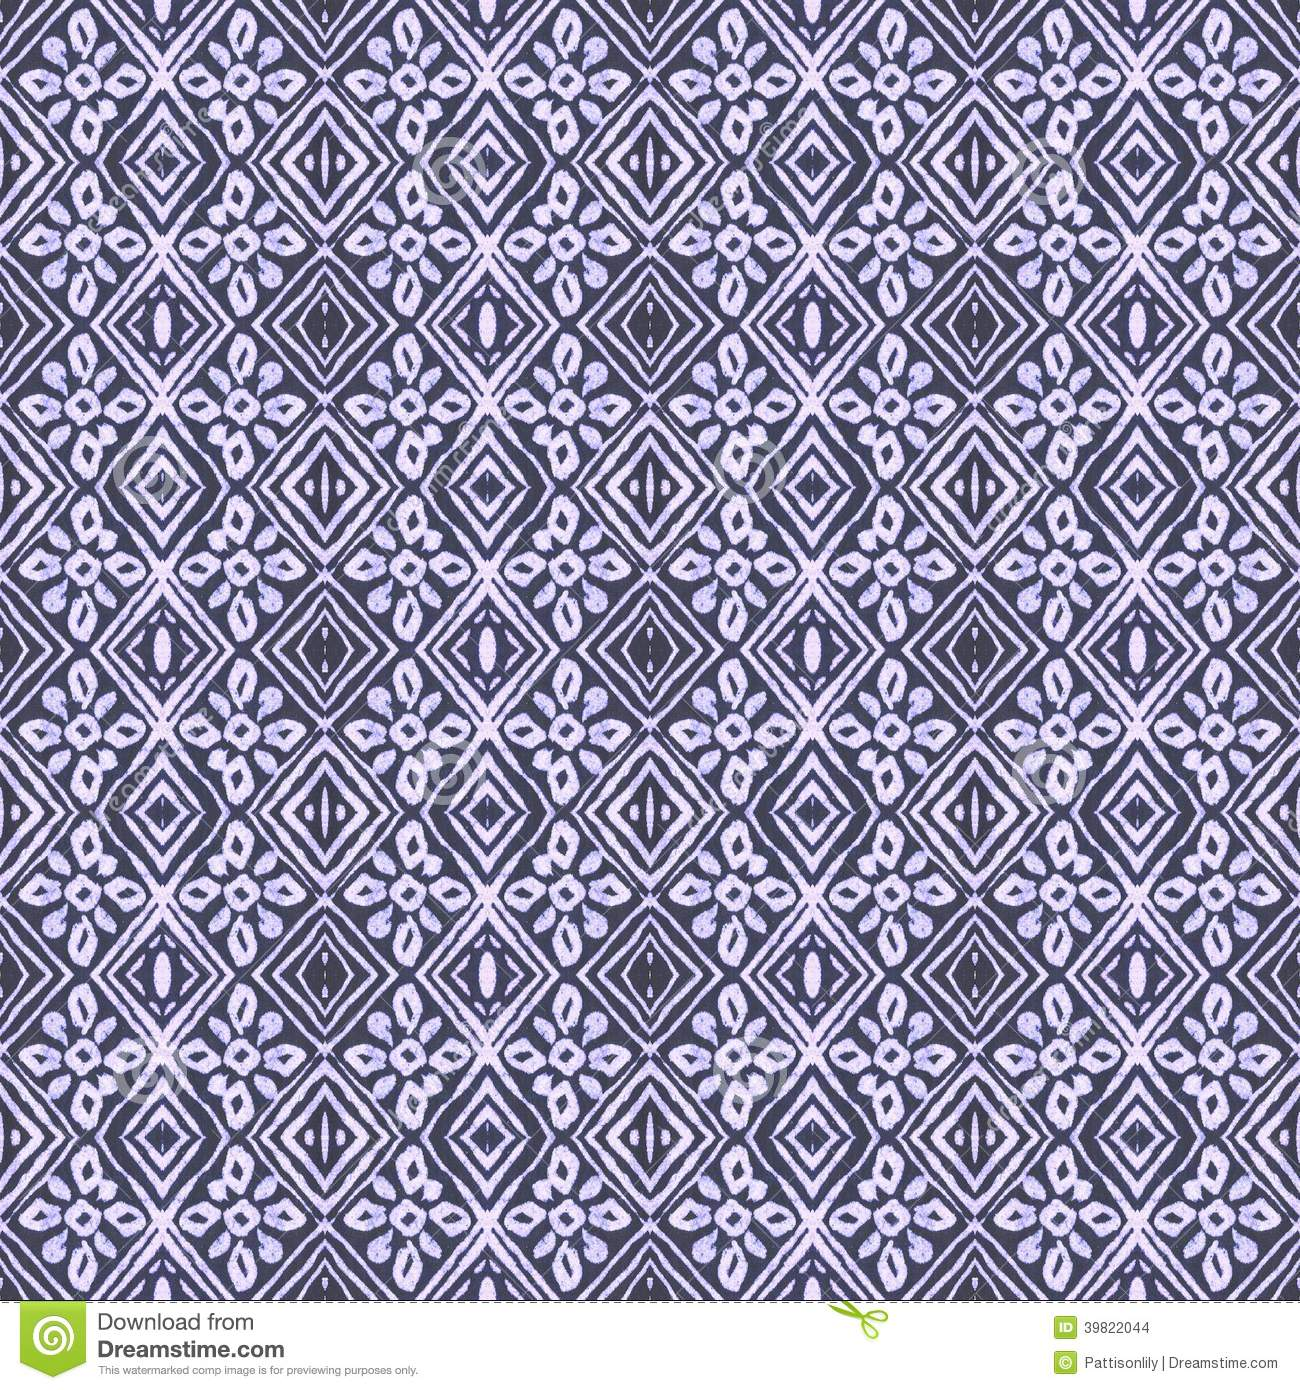 ... tile pattern inspired by African, tribal and indigo batik textiles